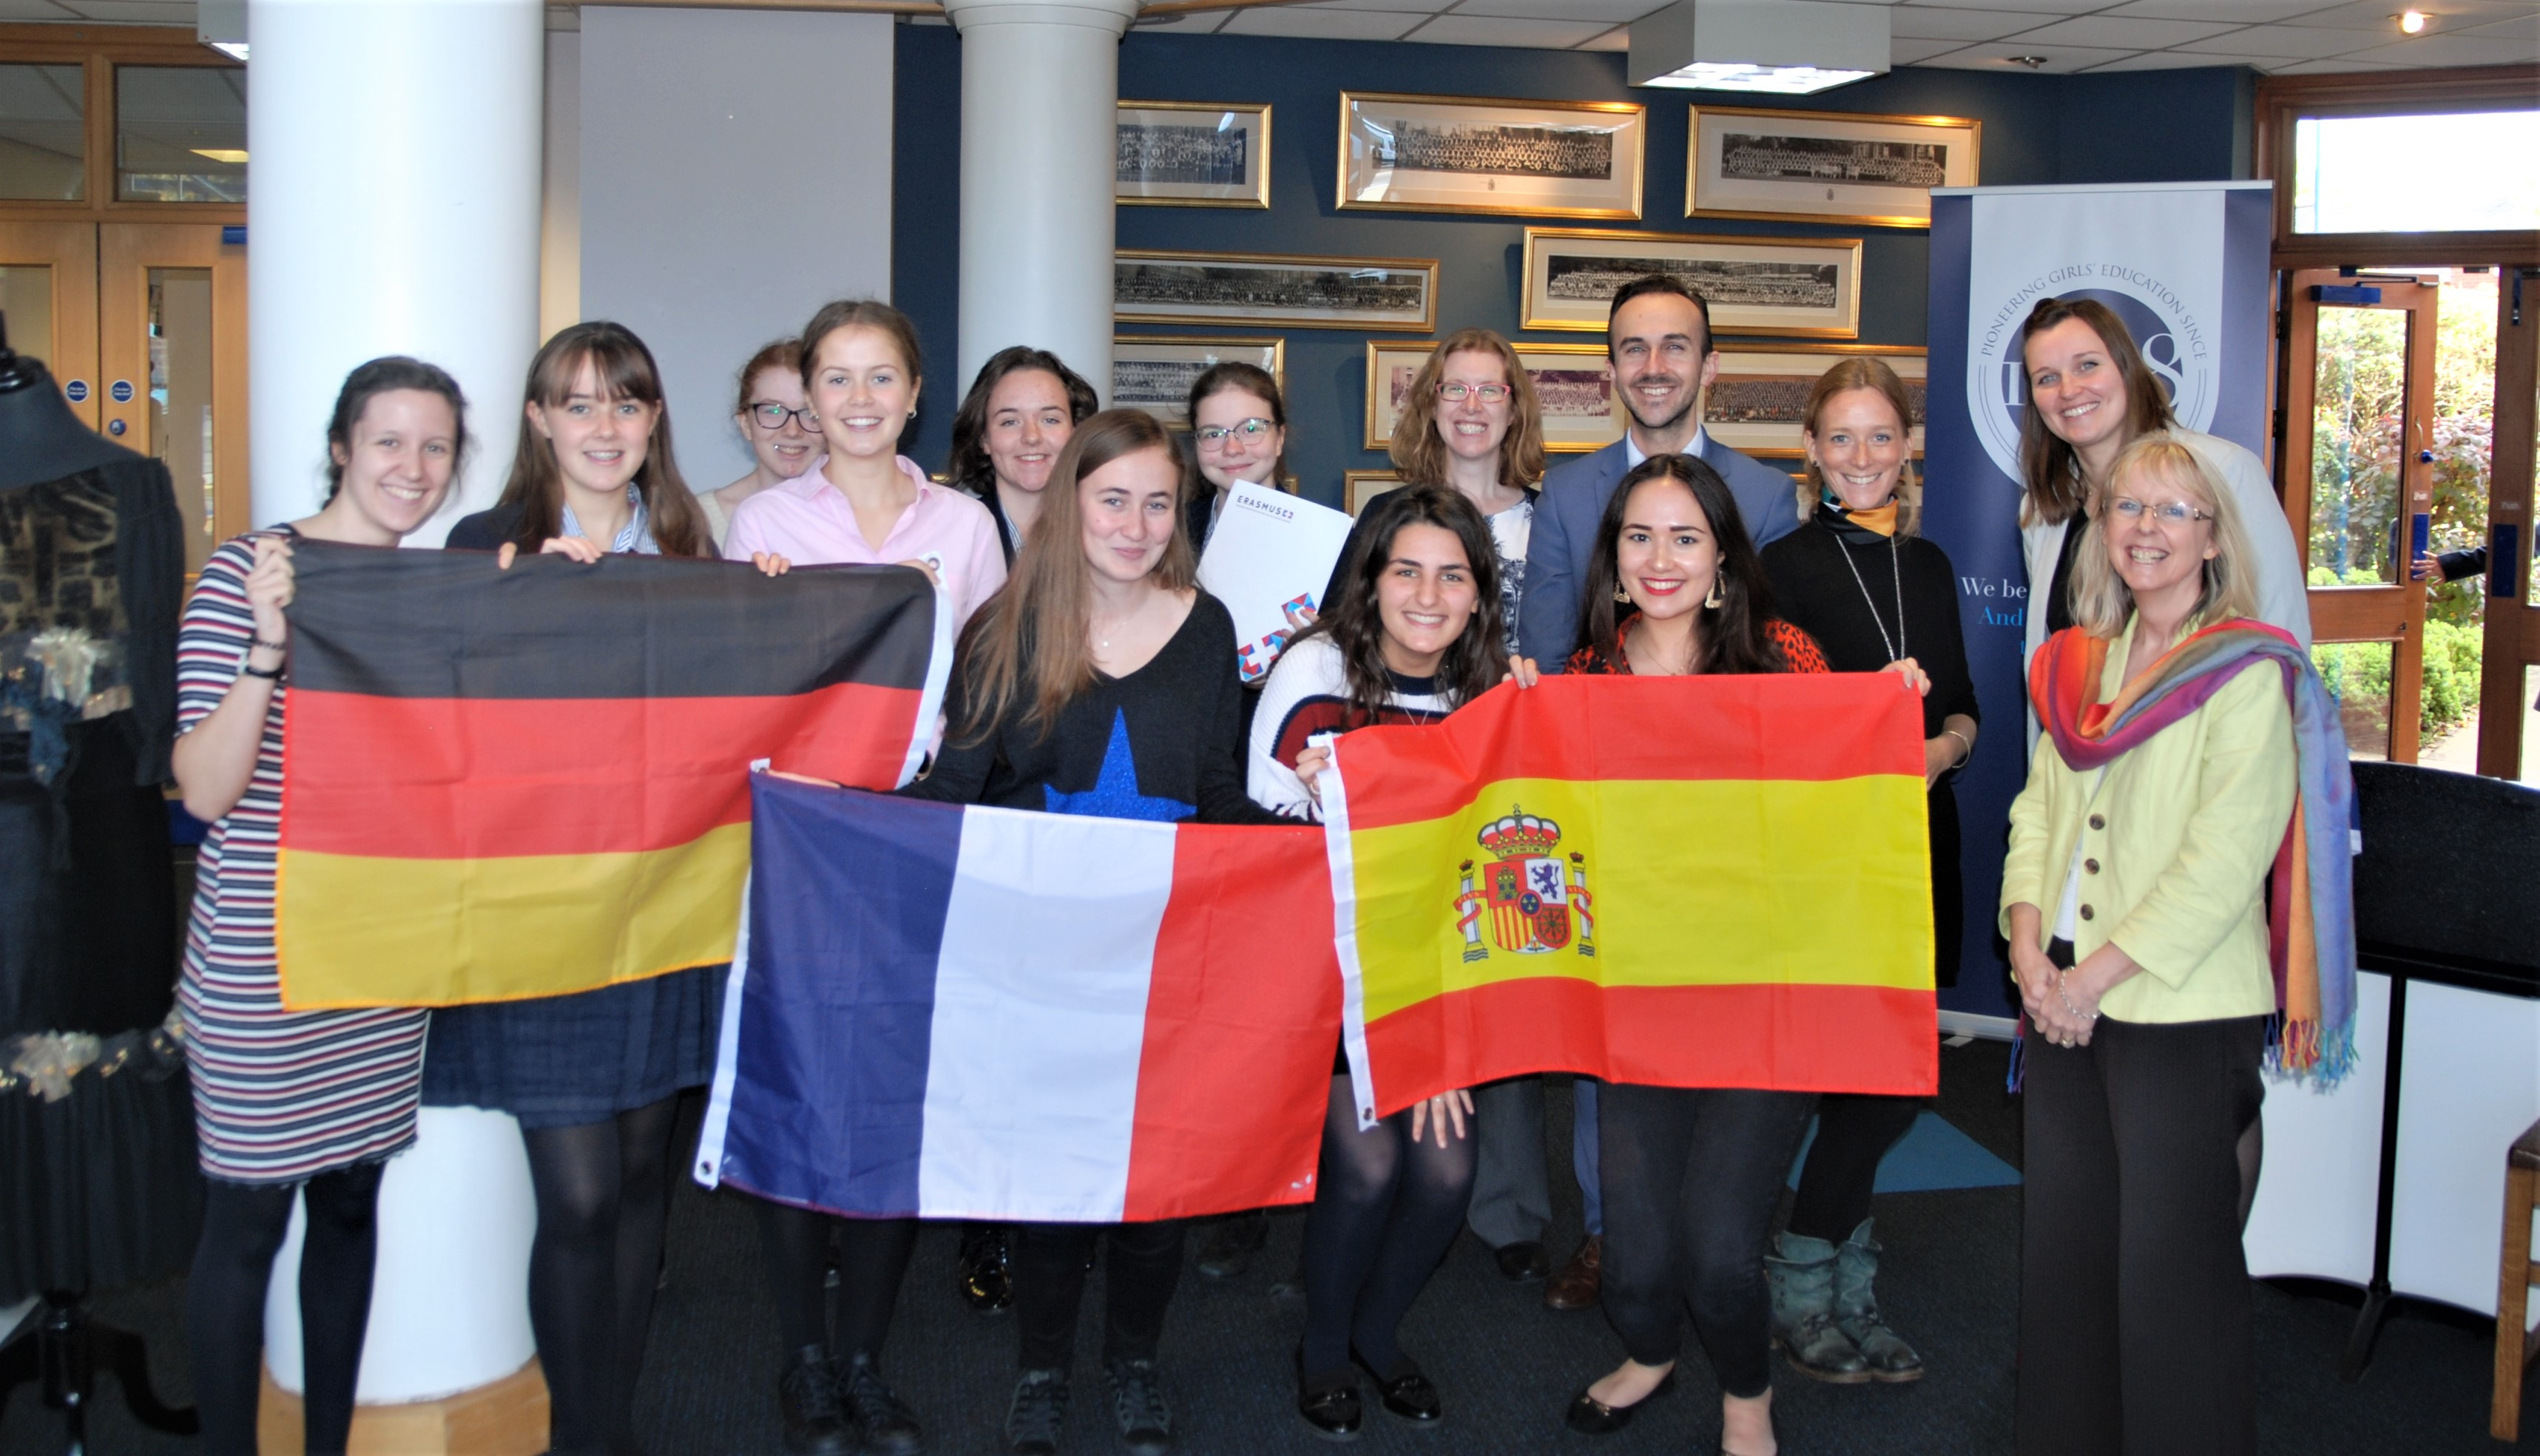 Northampton High School Receives a Prestigious British Council National eTwinning Award